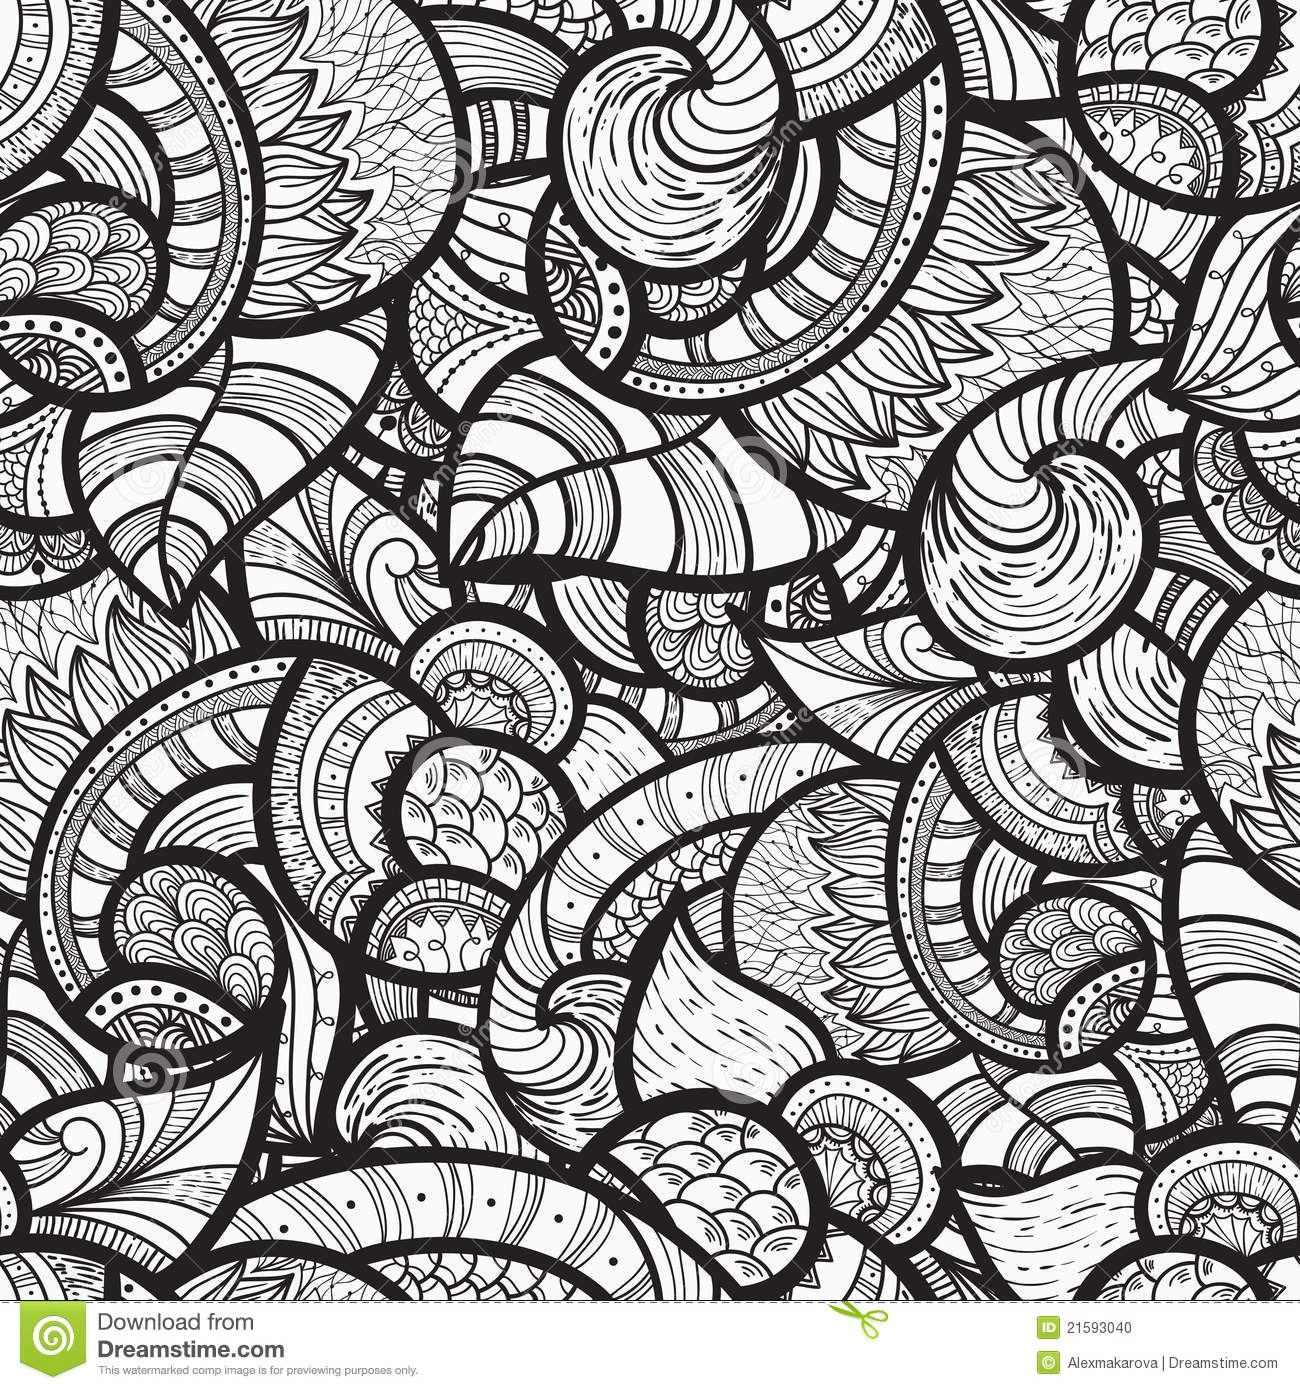 sharpie coloring pages - stock photo seamless ethnic doodle pattern image